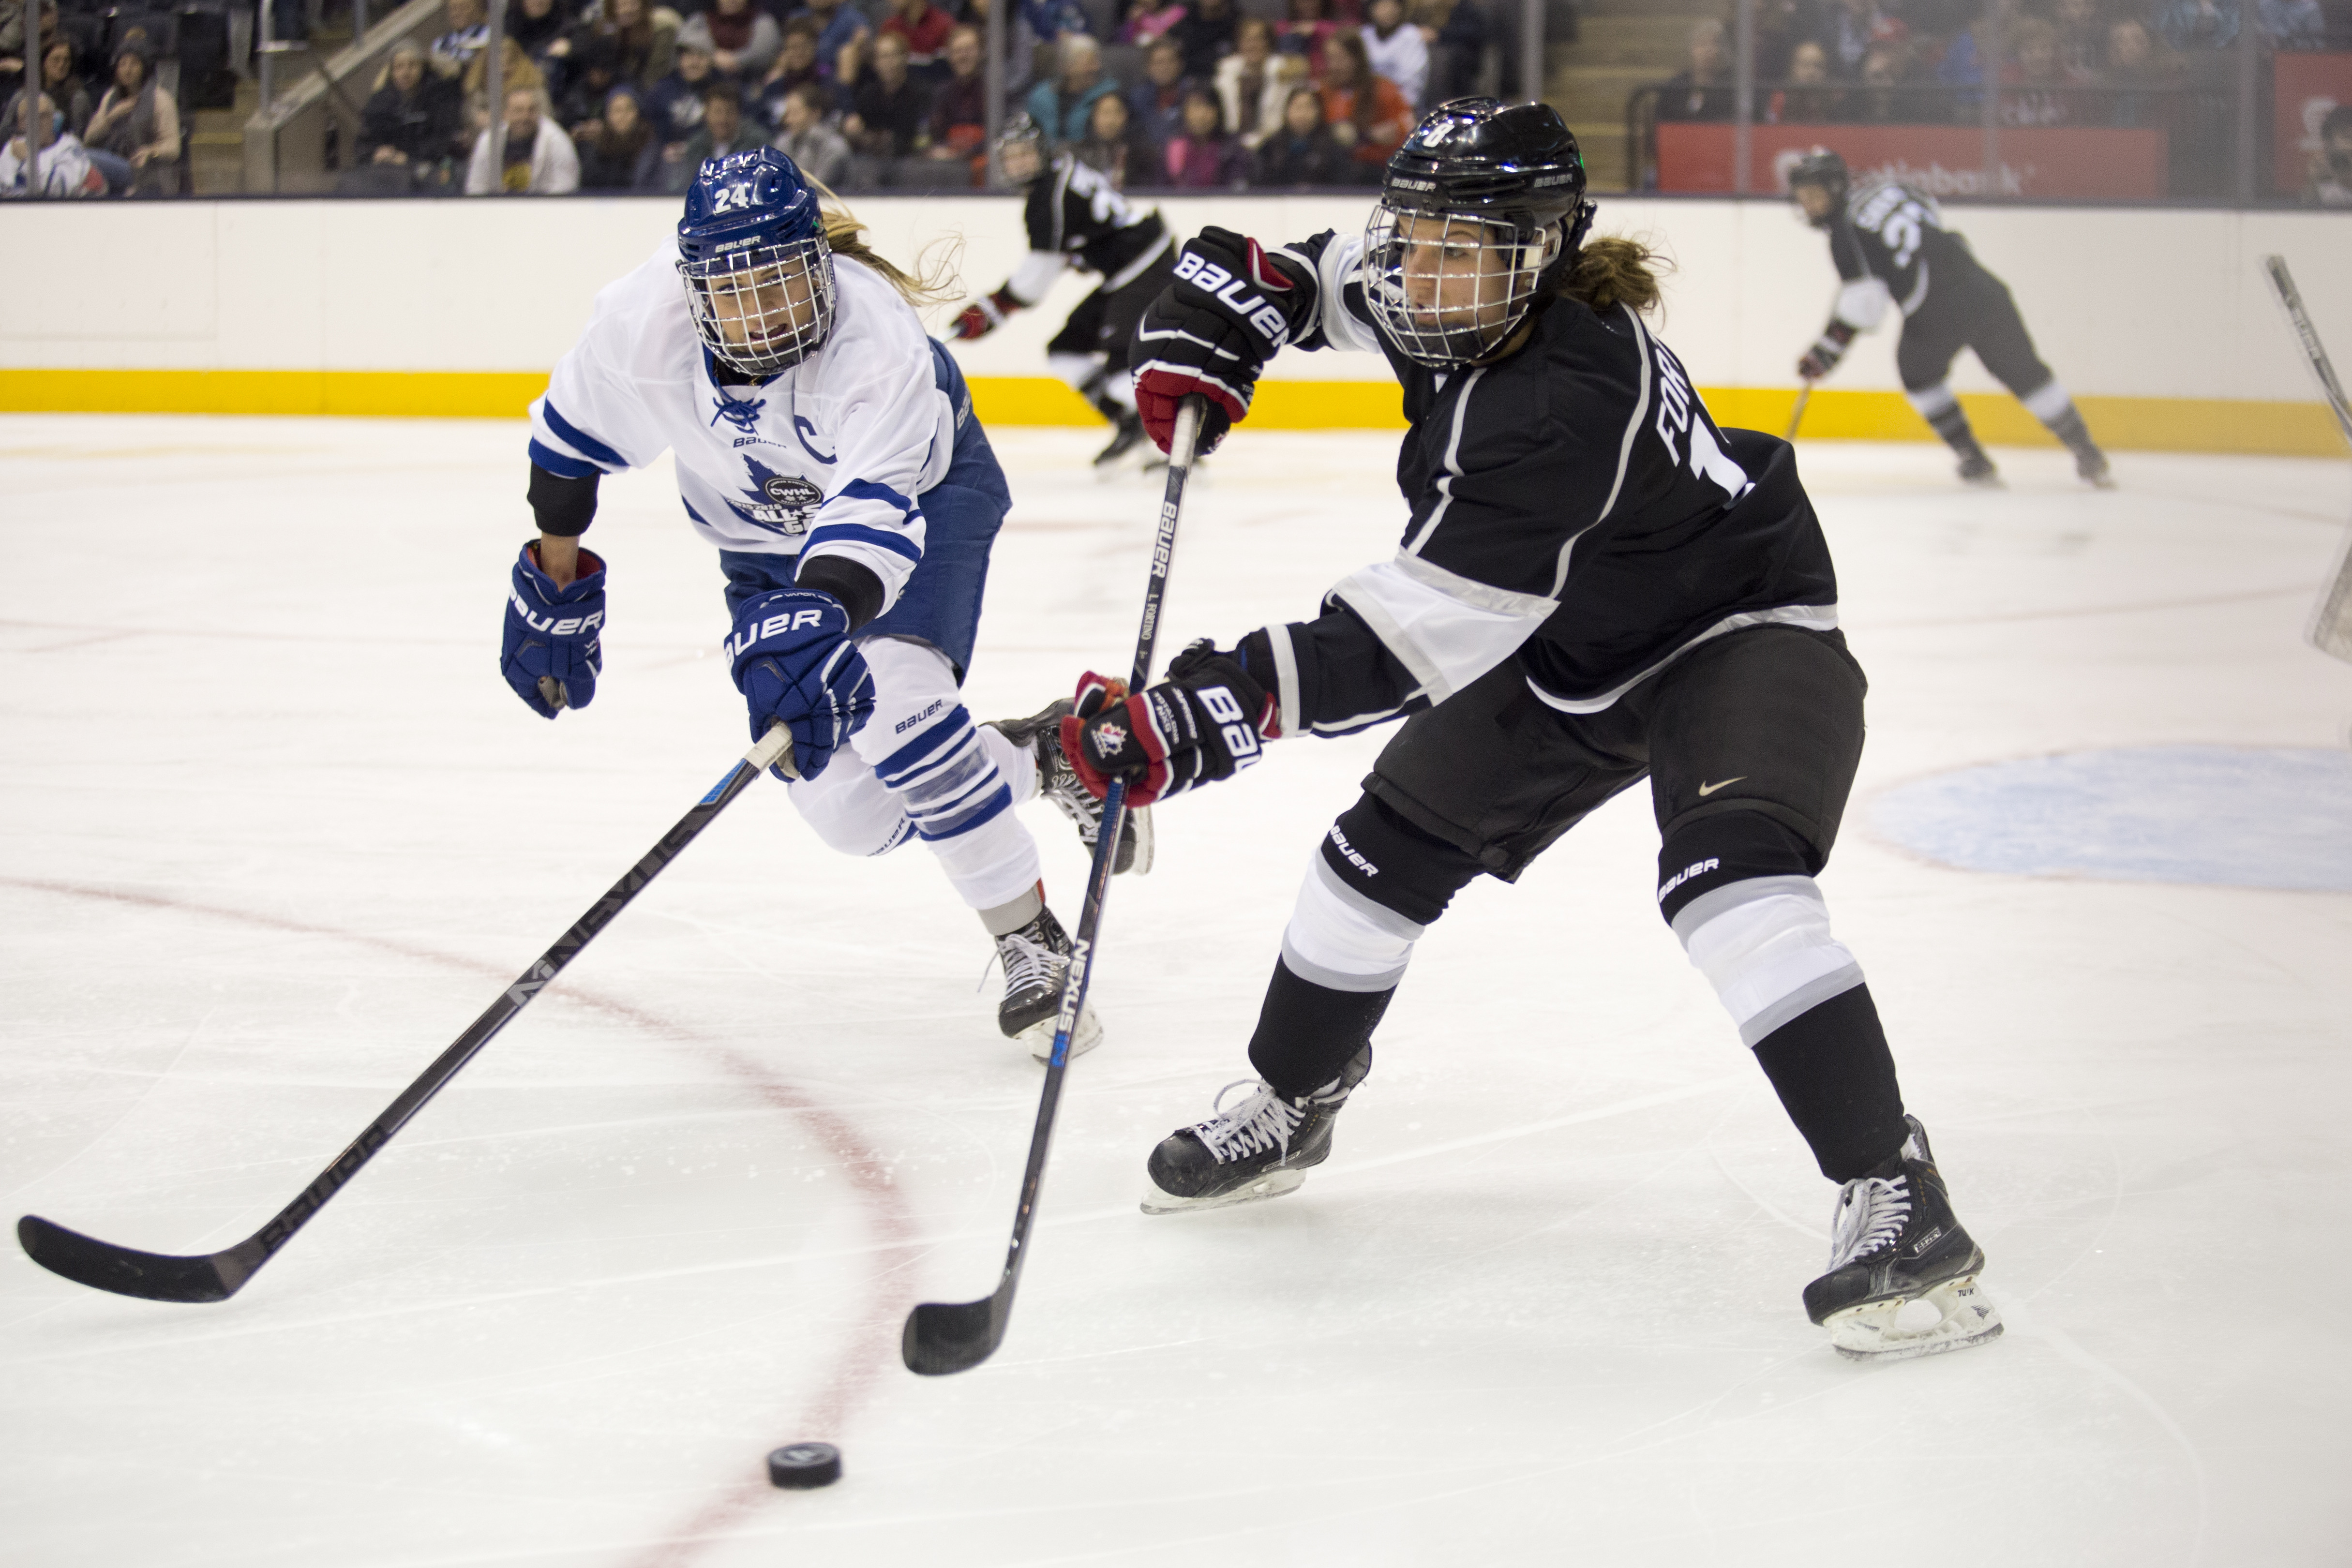 CWHL All-Star Game a Sign of Greater Things to Come